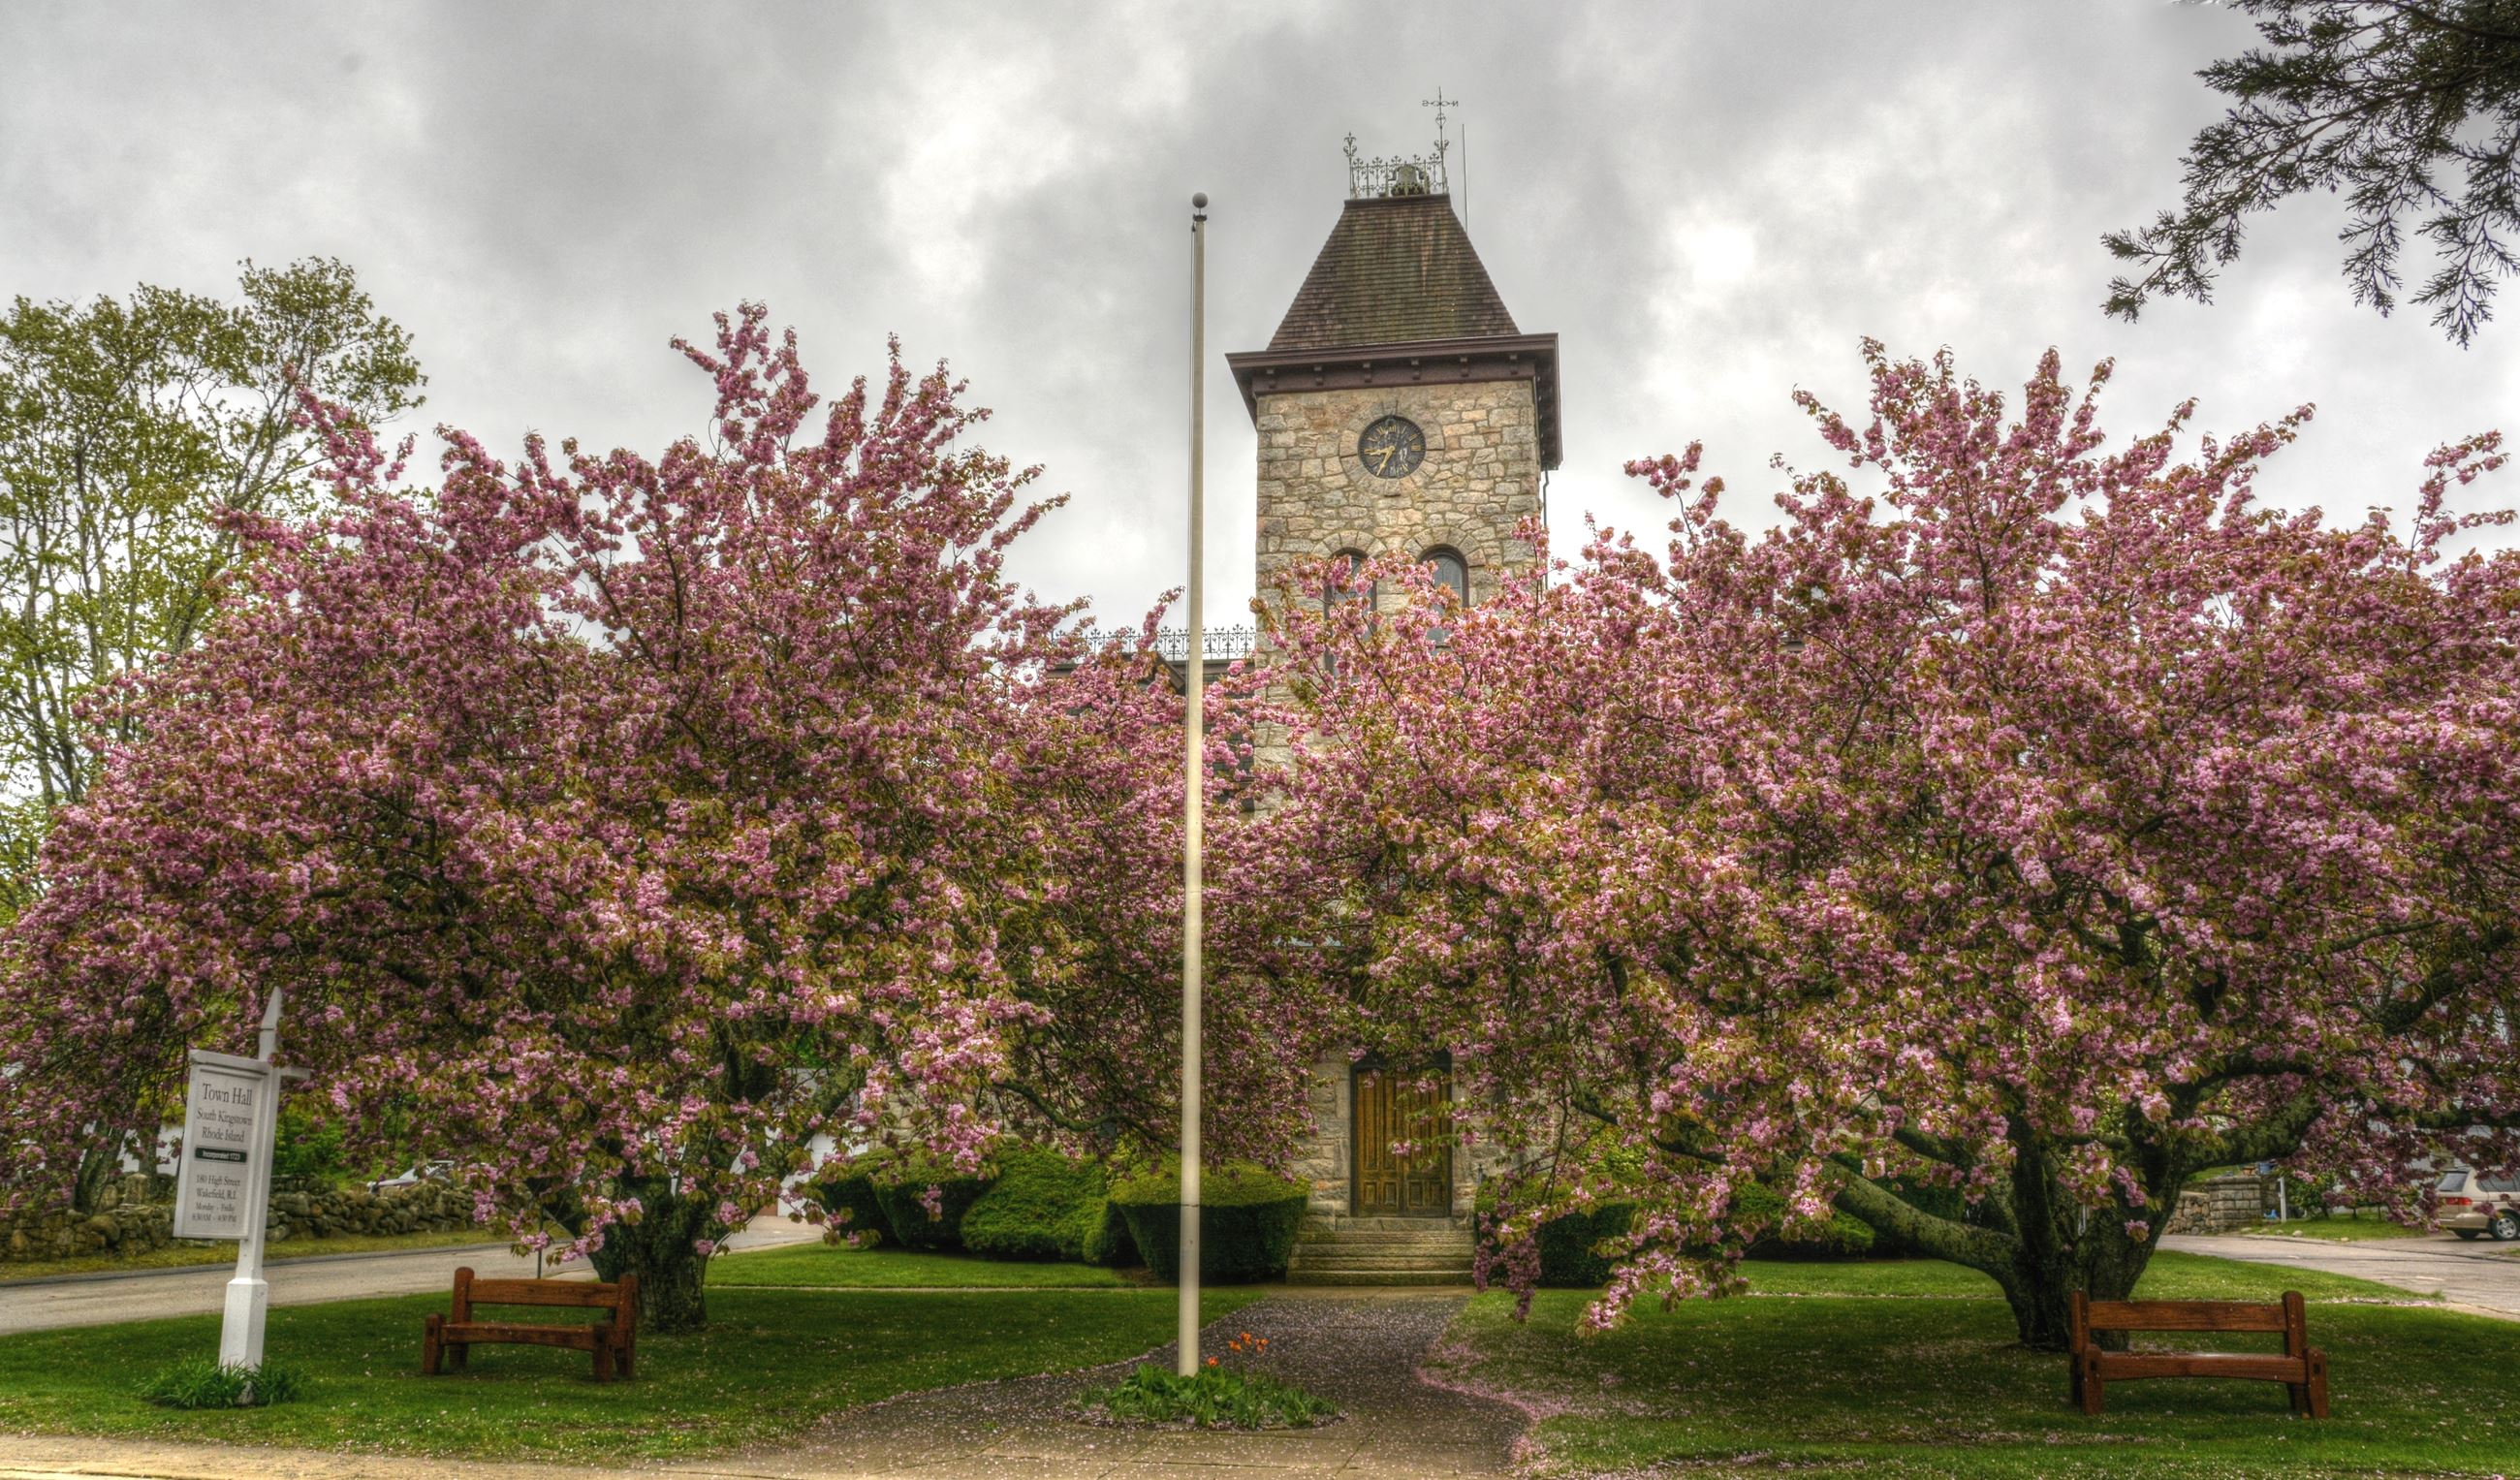 Town Hall cherry blossoms - photo credit Victoria Dority